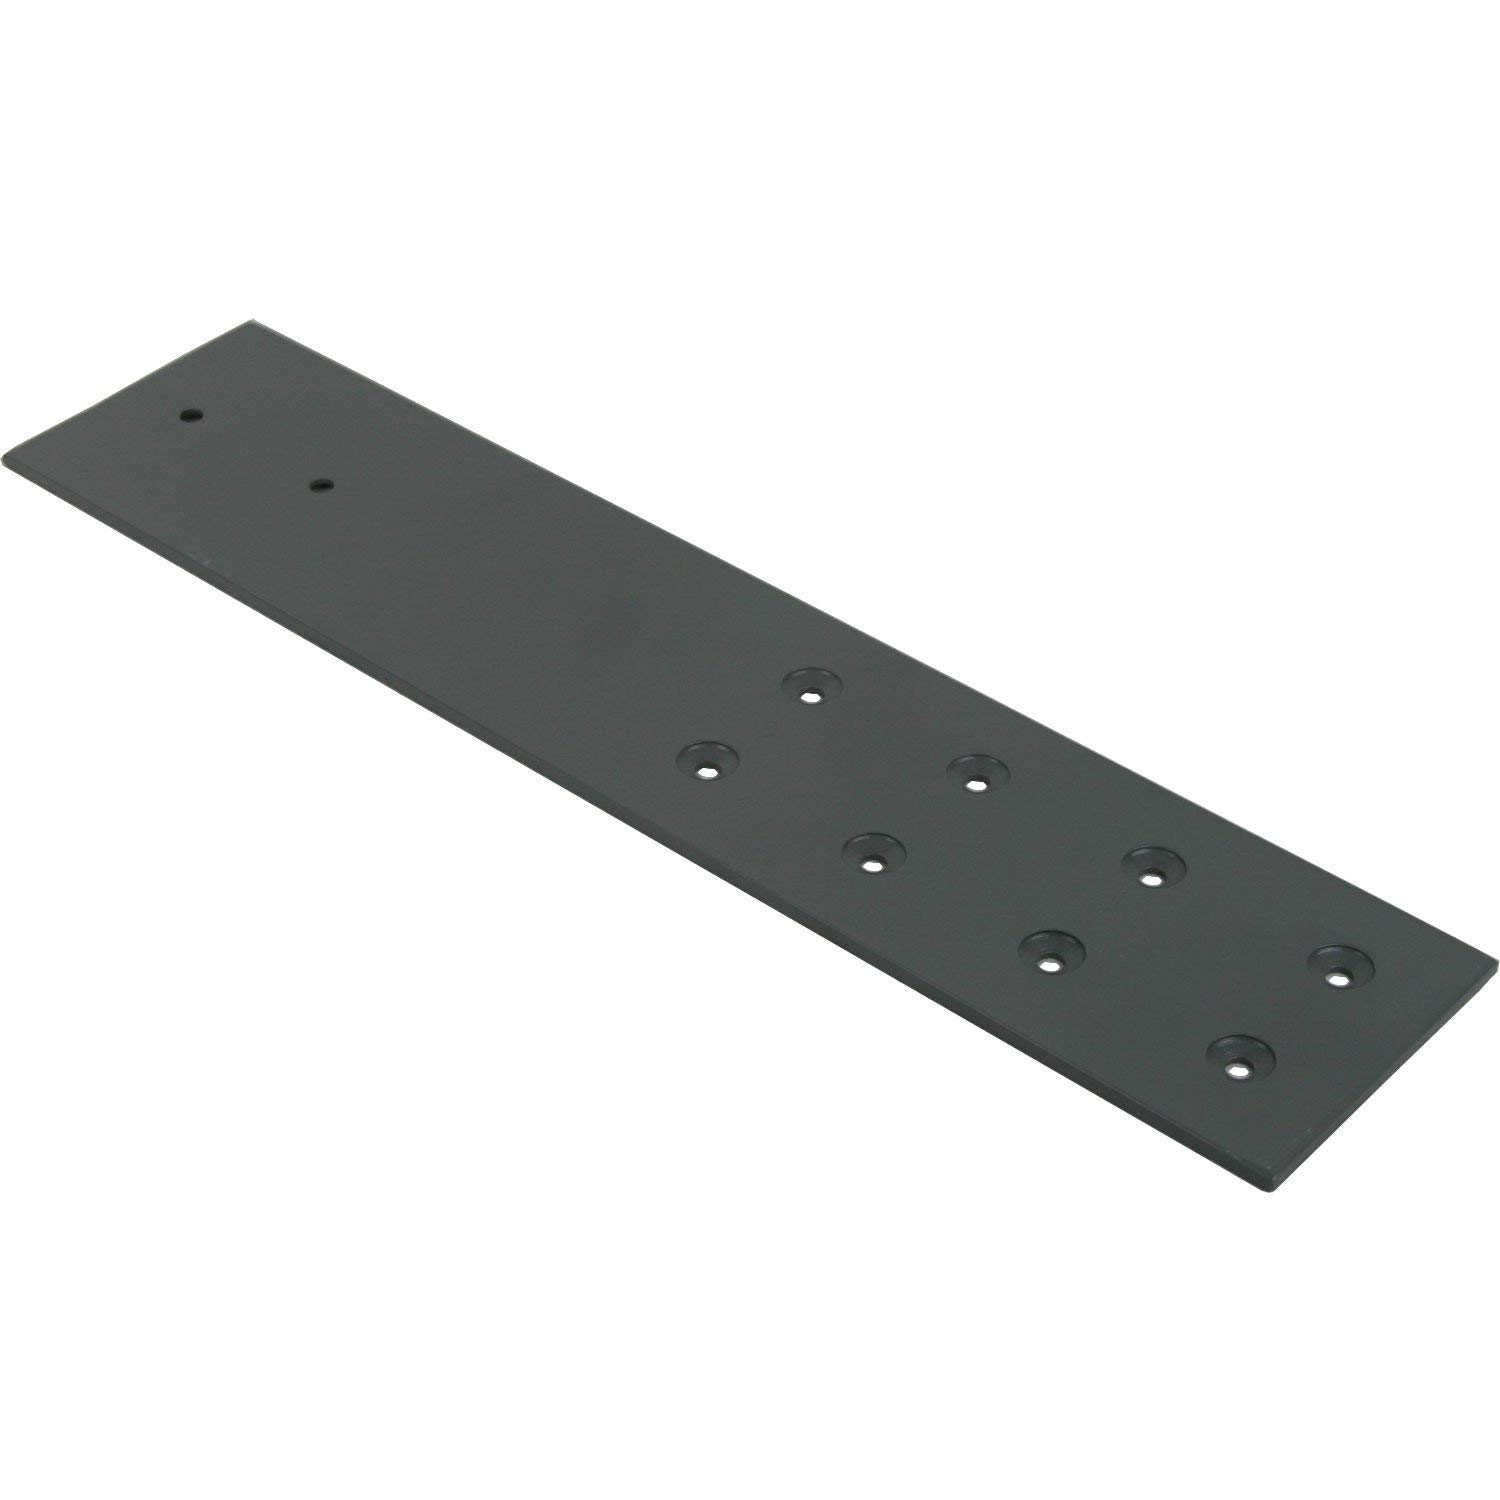 FastCap SB-16STEALTHP 3-1/2-inches x 16-inches SpeedBrace Stealth 300LB, Prime